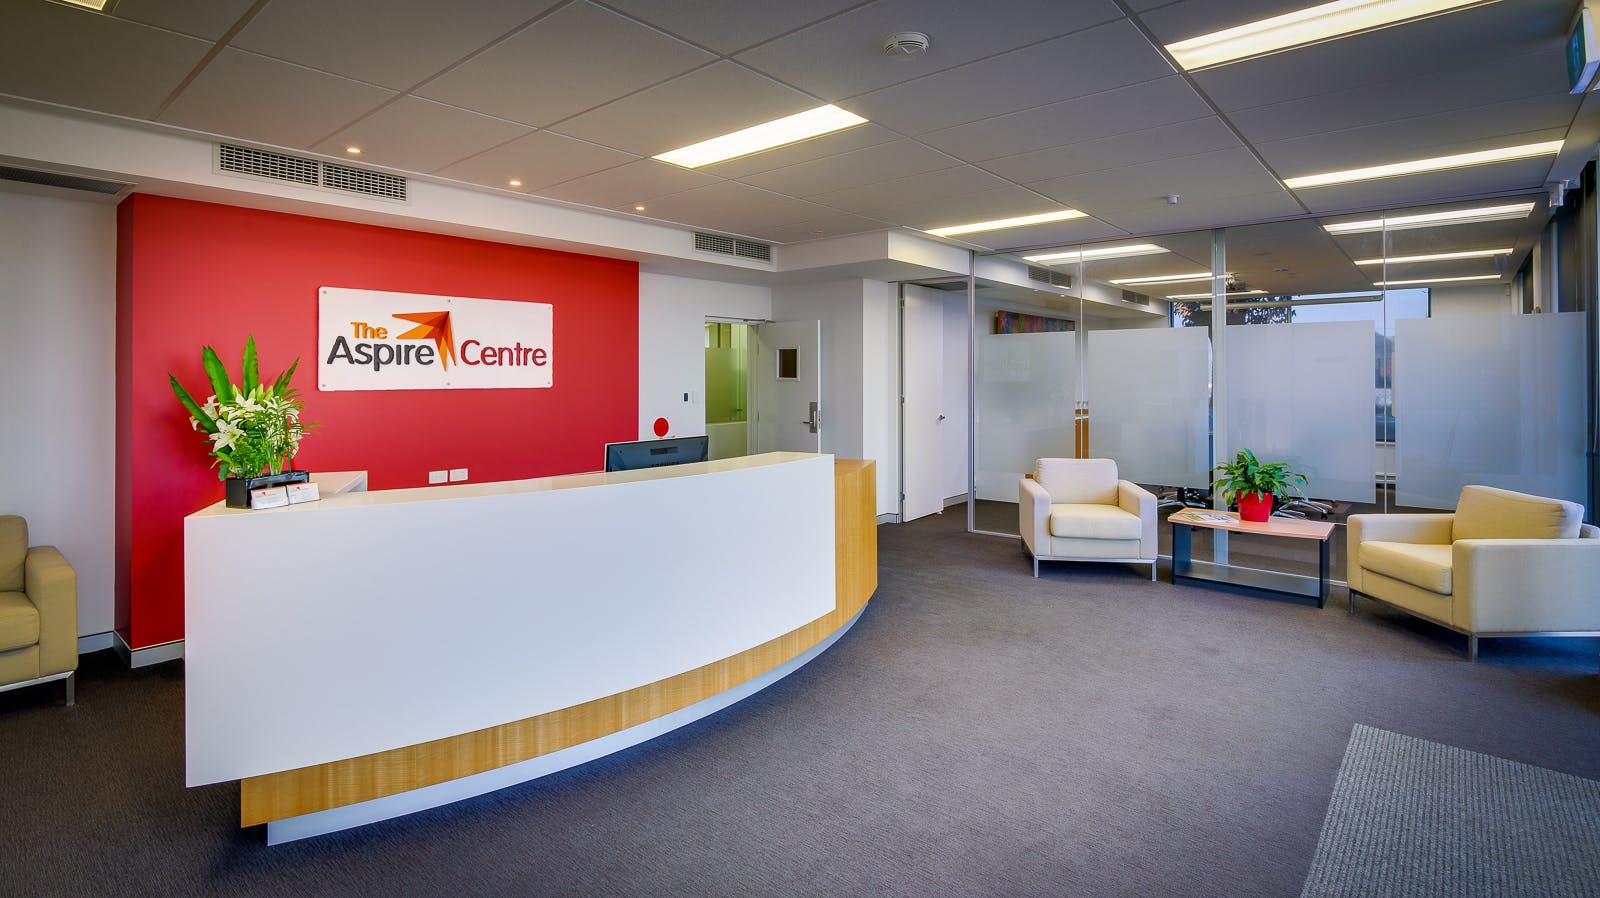 Office 12, serviced office at The Aspire Centre, image 3